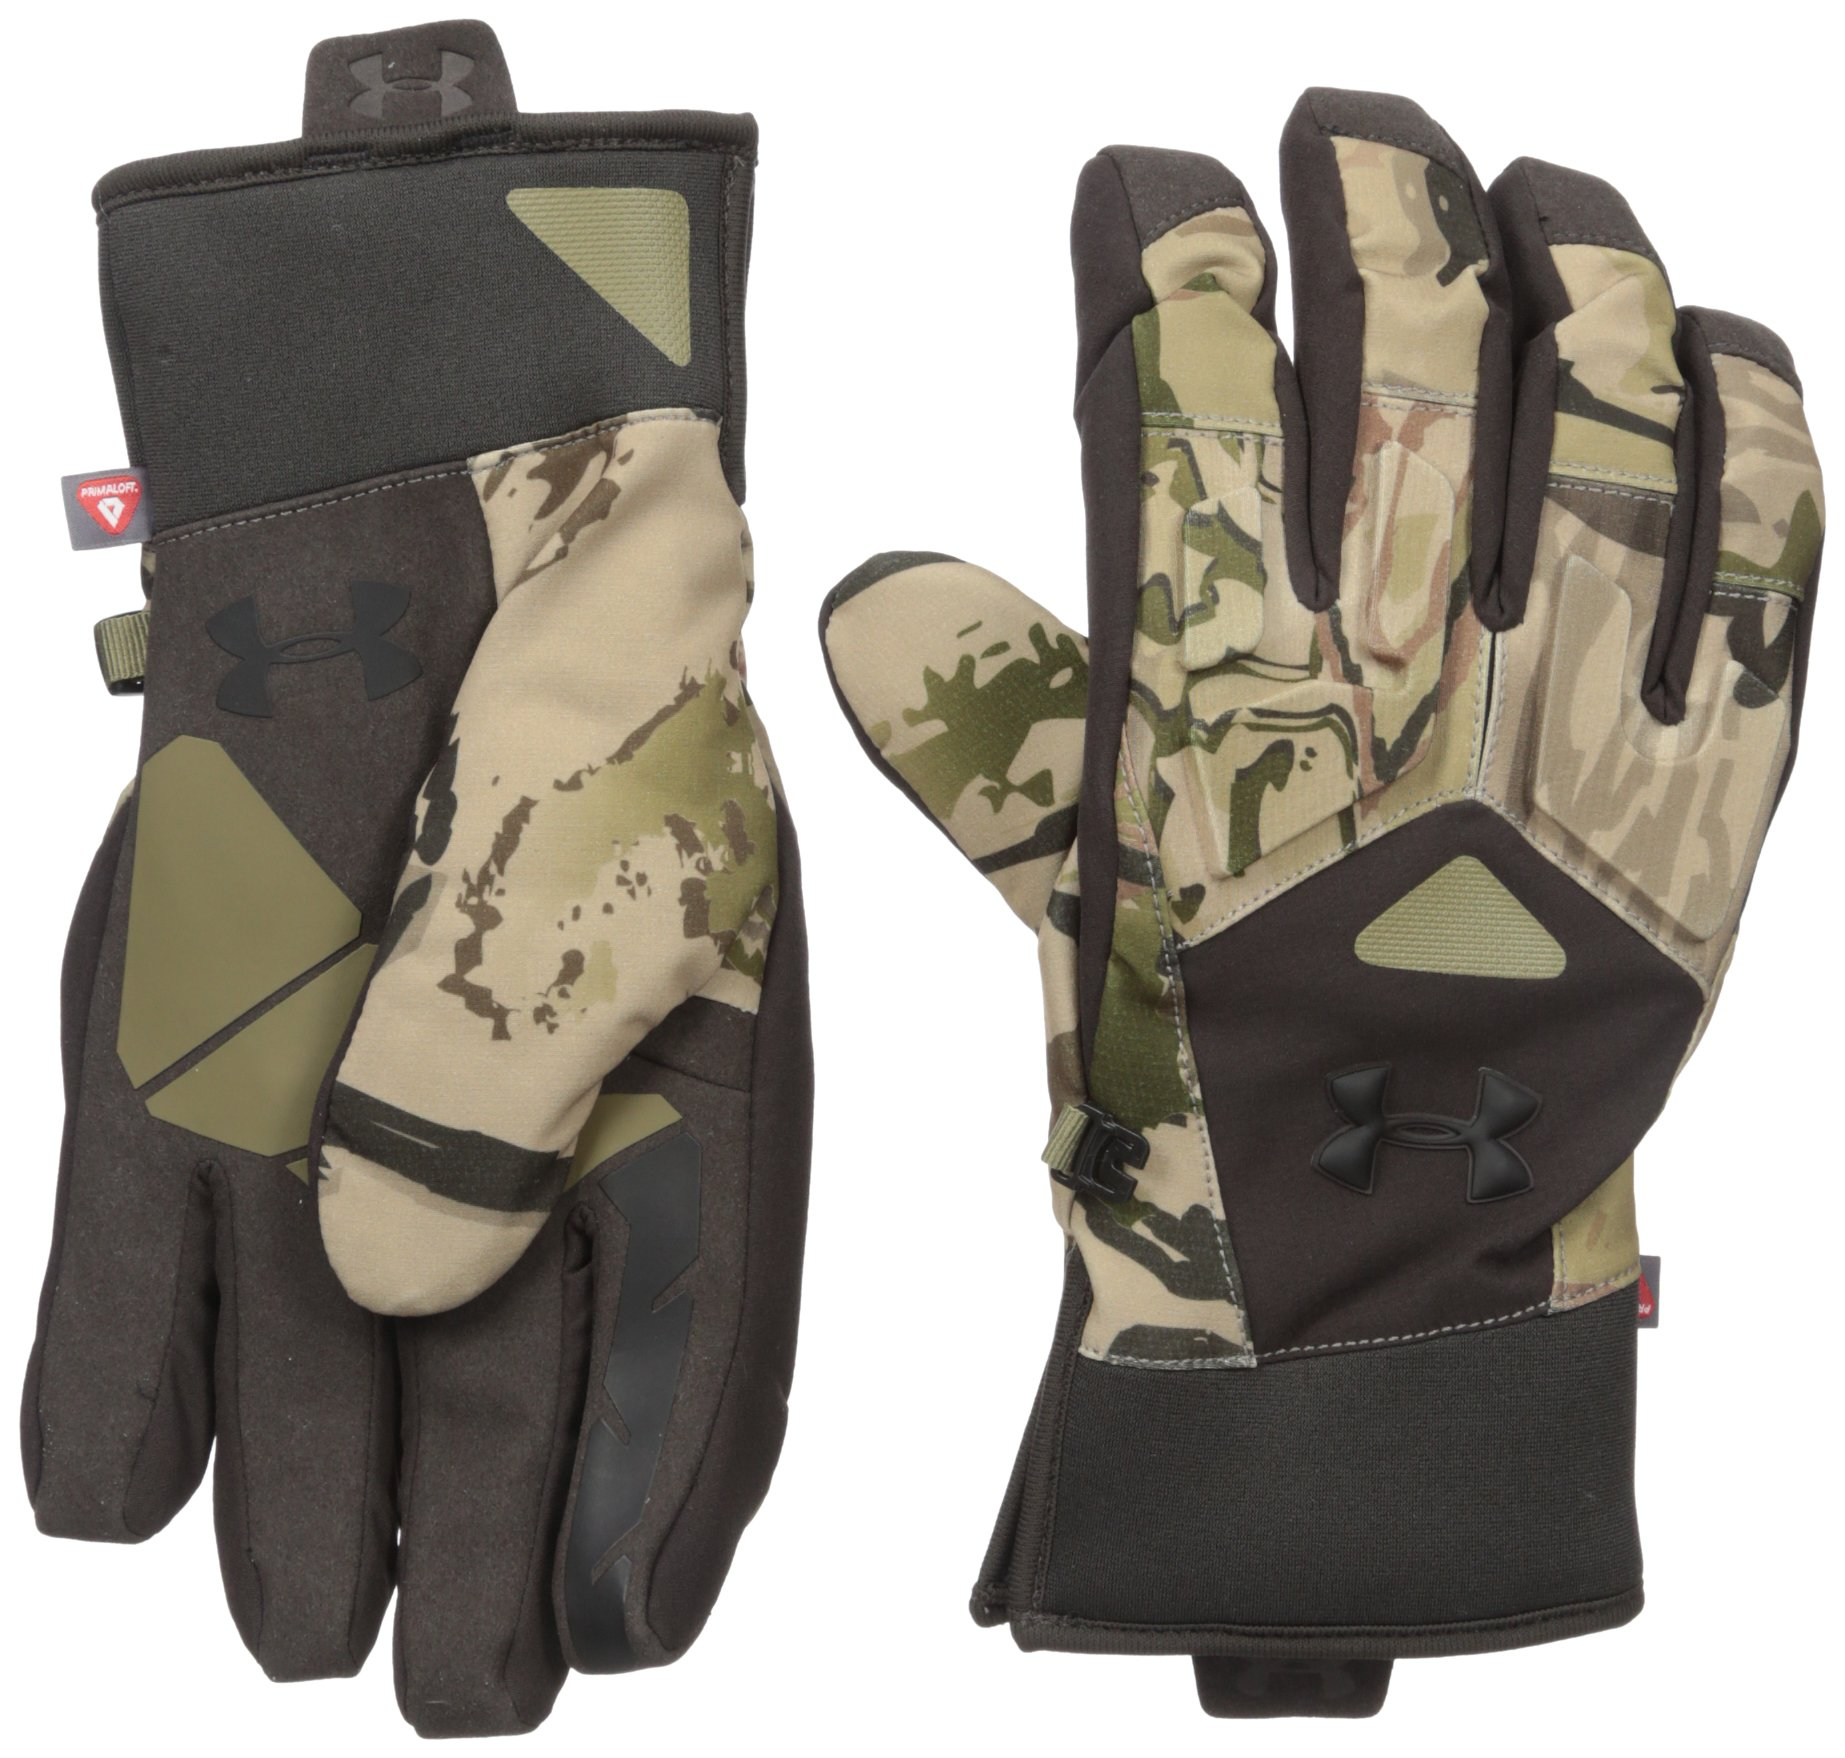 Under Armour Men's Scent Control Primer 2.0 Gloves, Ridge Reaper Camo Ba (901)/Black, Large by Under Armour